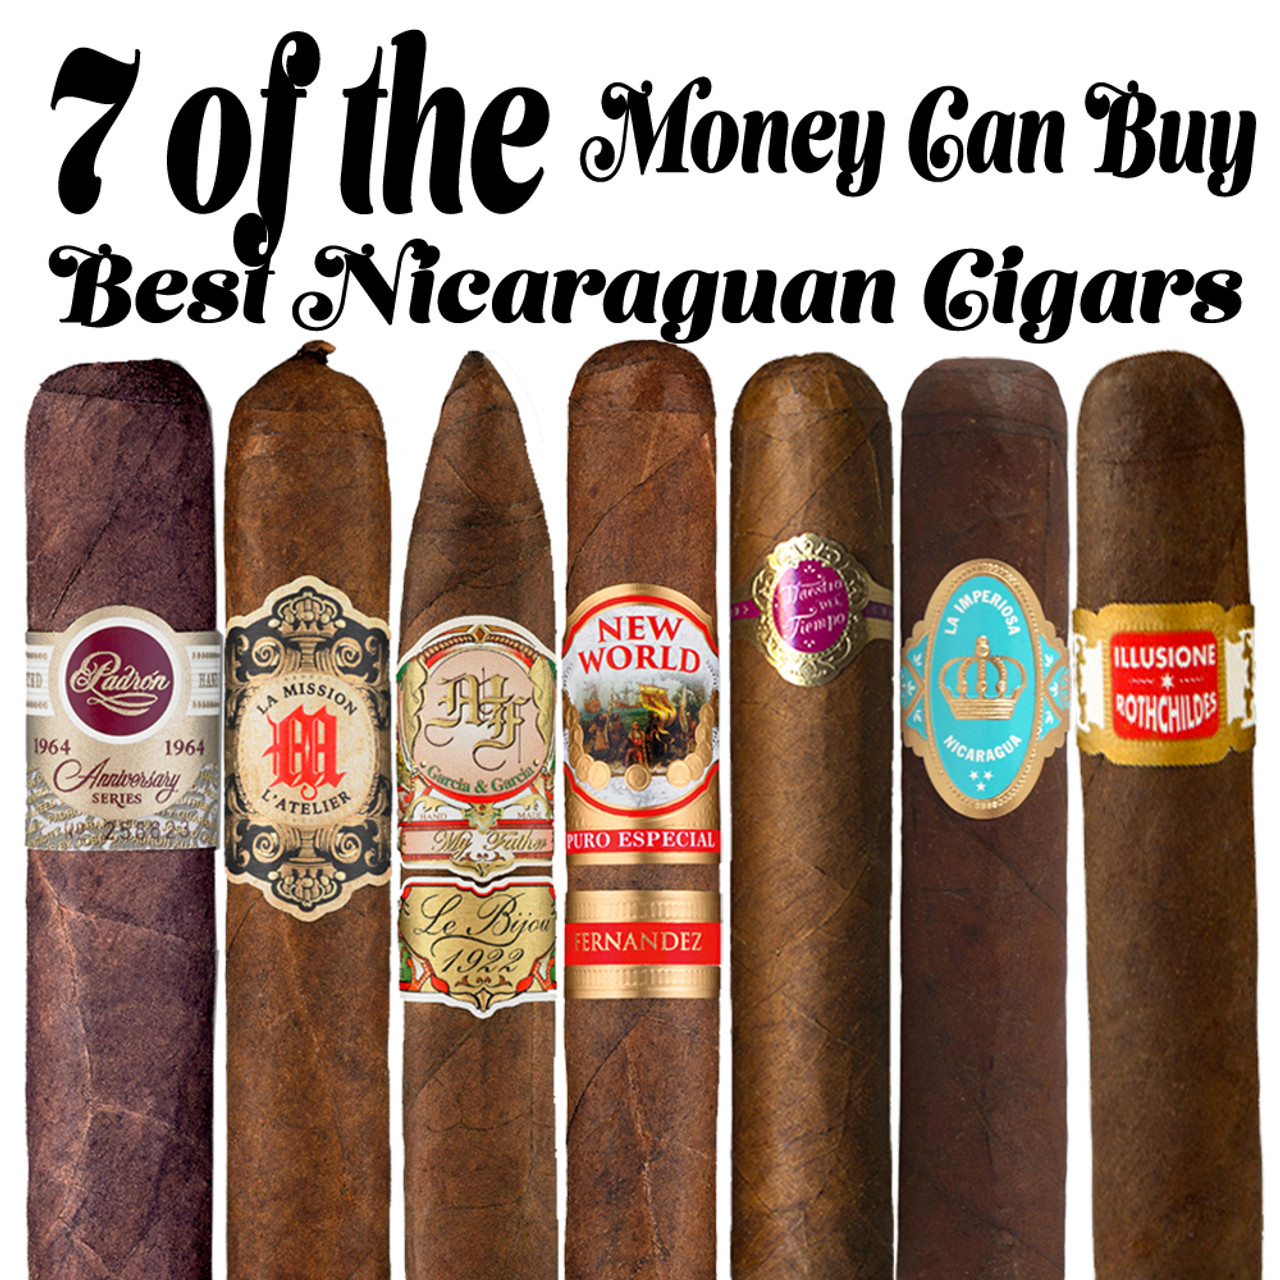 The Best Nicaraguan Cigars: 5 to Add to Your Collection